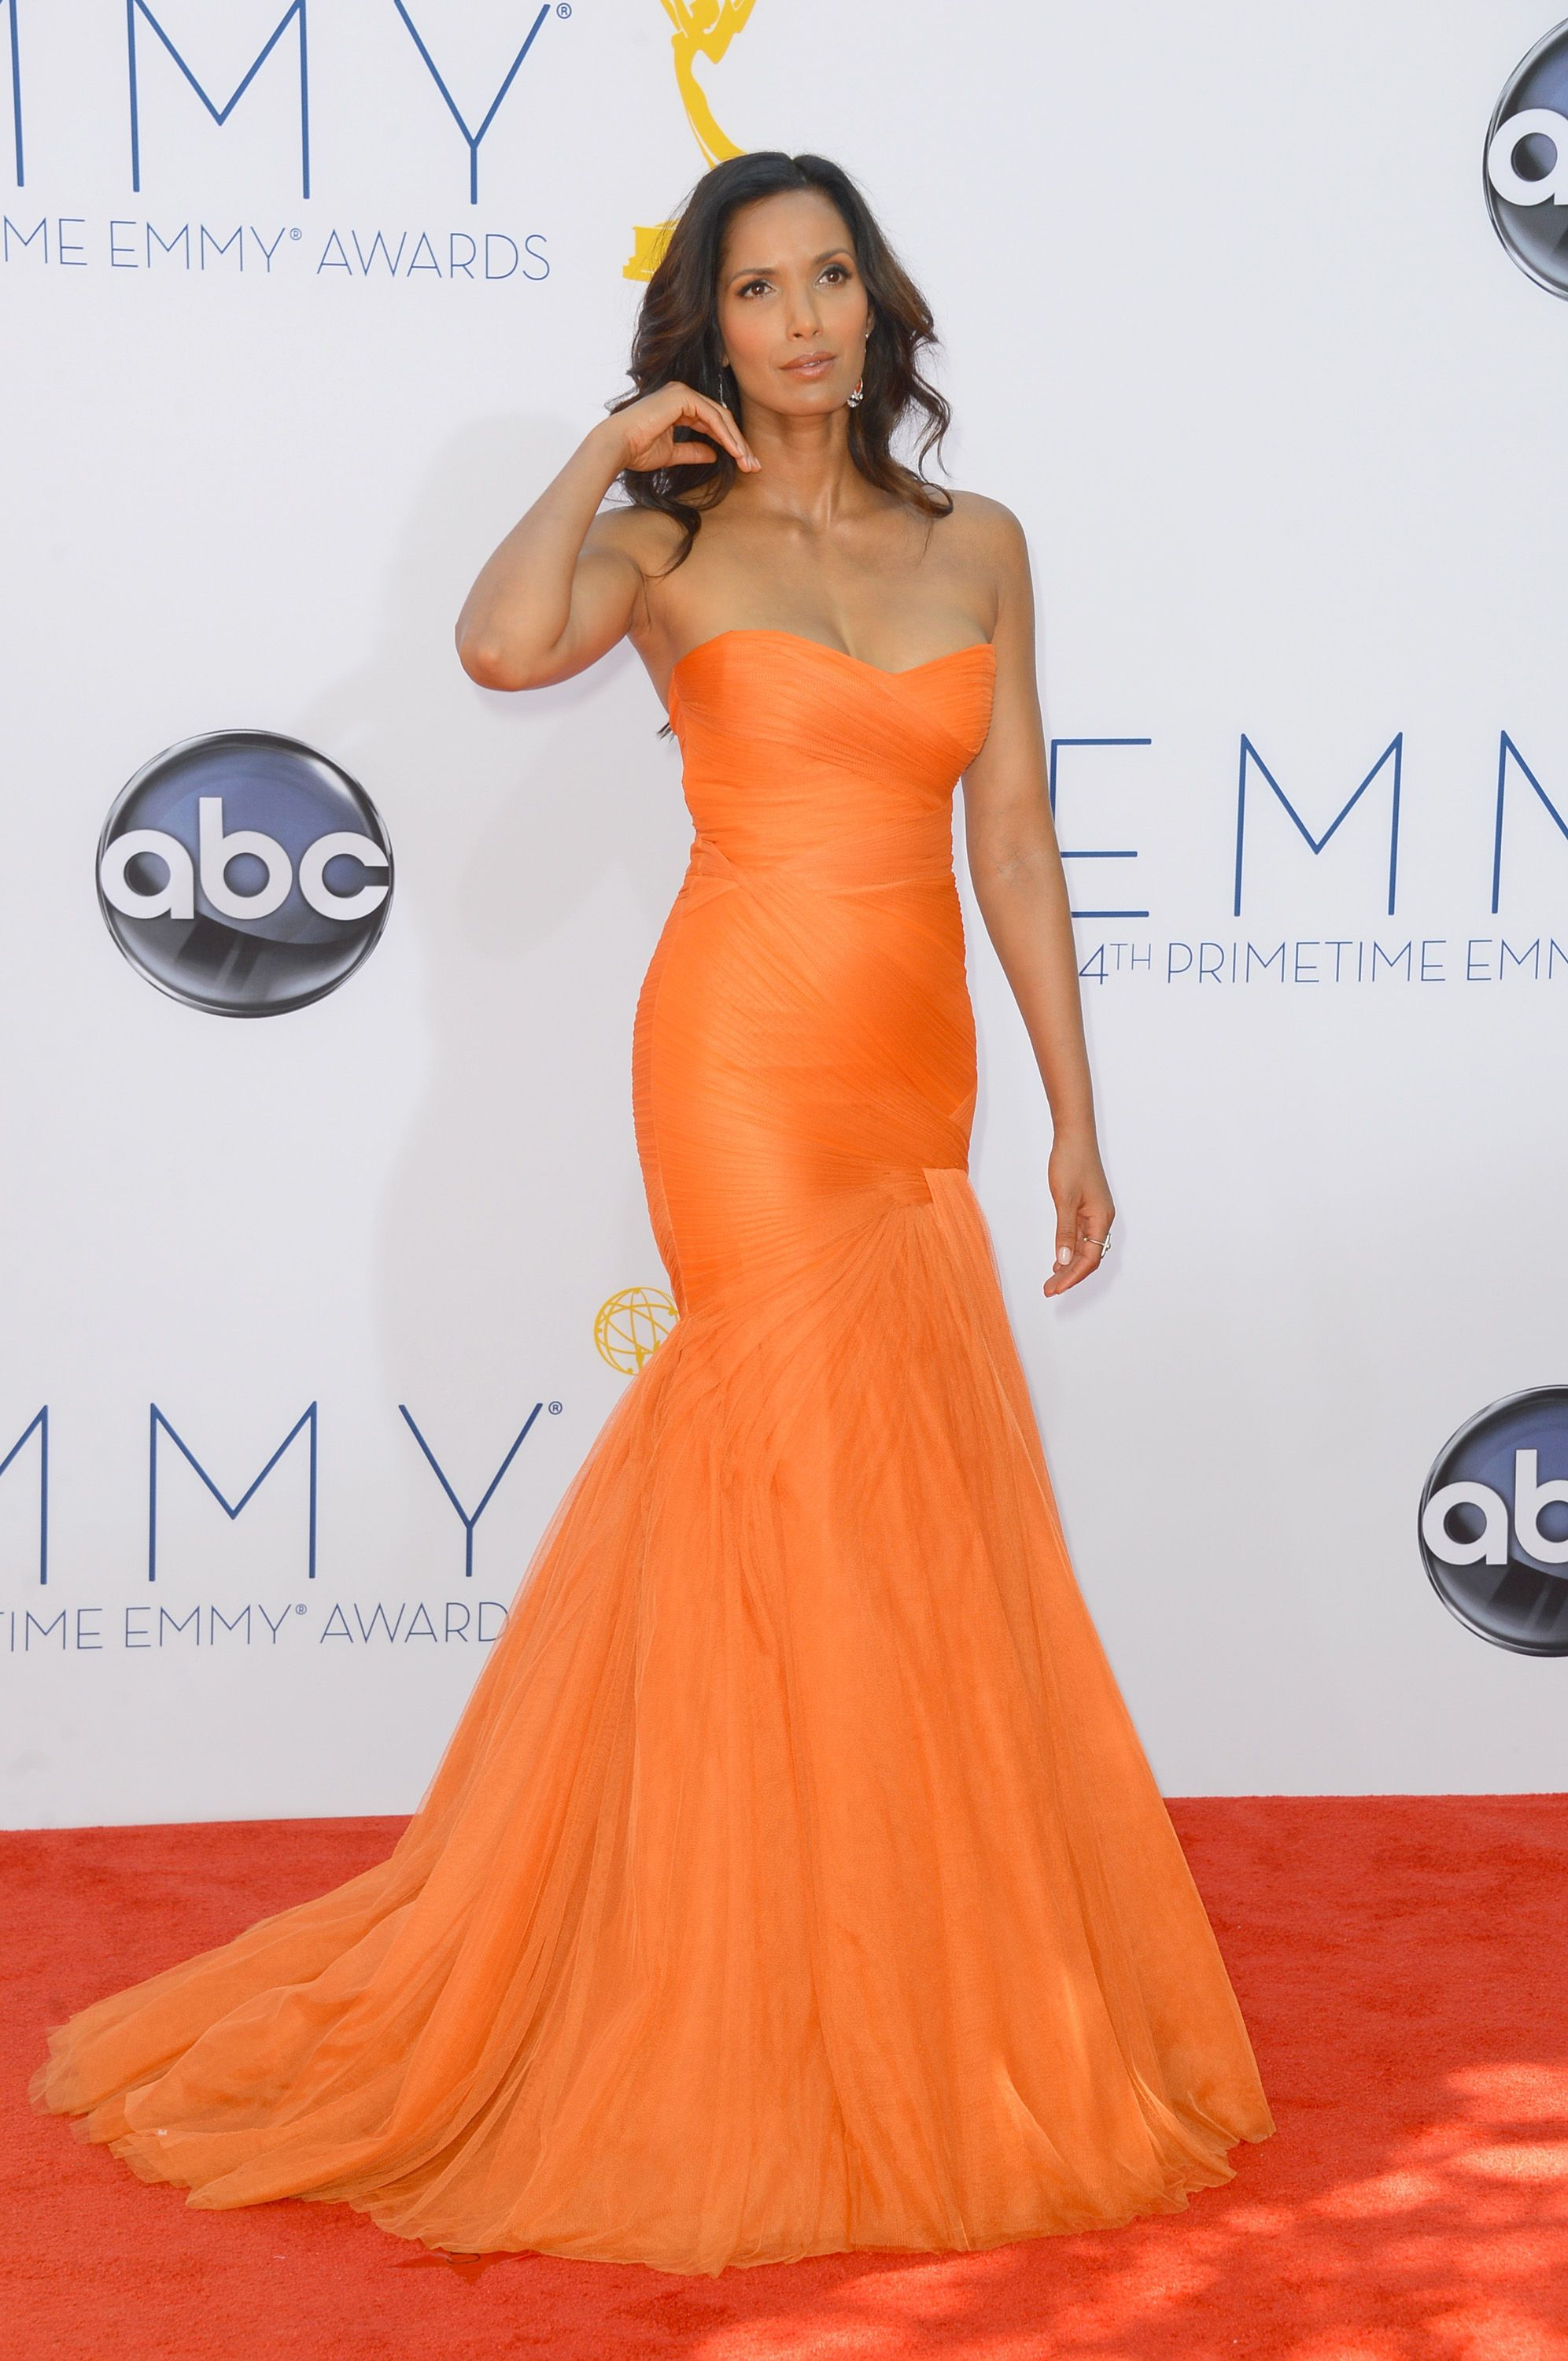 Padma lakshmi in monique lhuillier great style pinterest padma